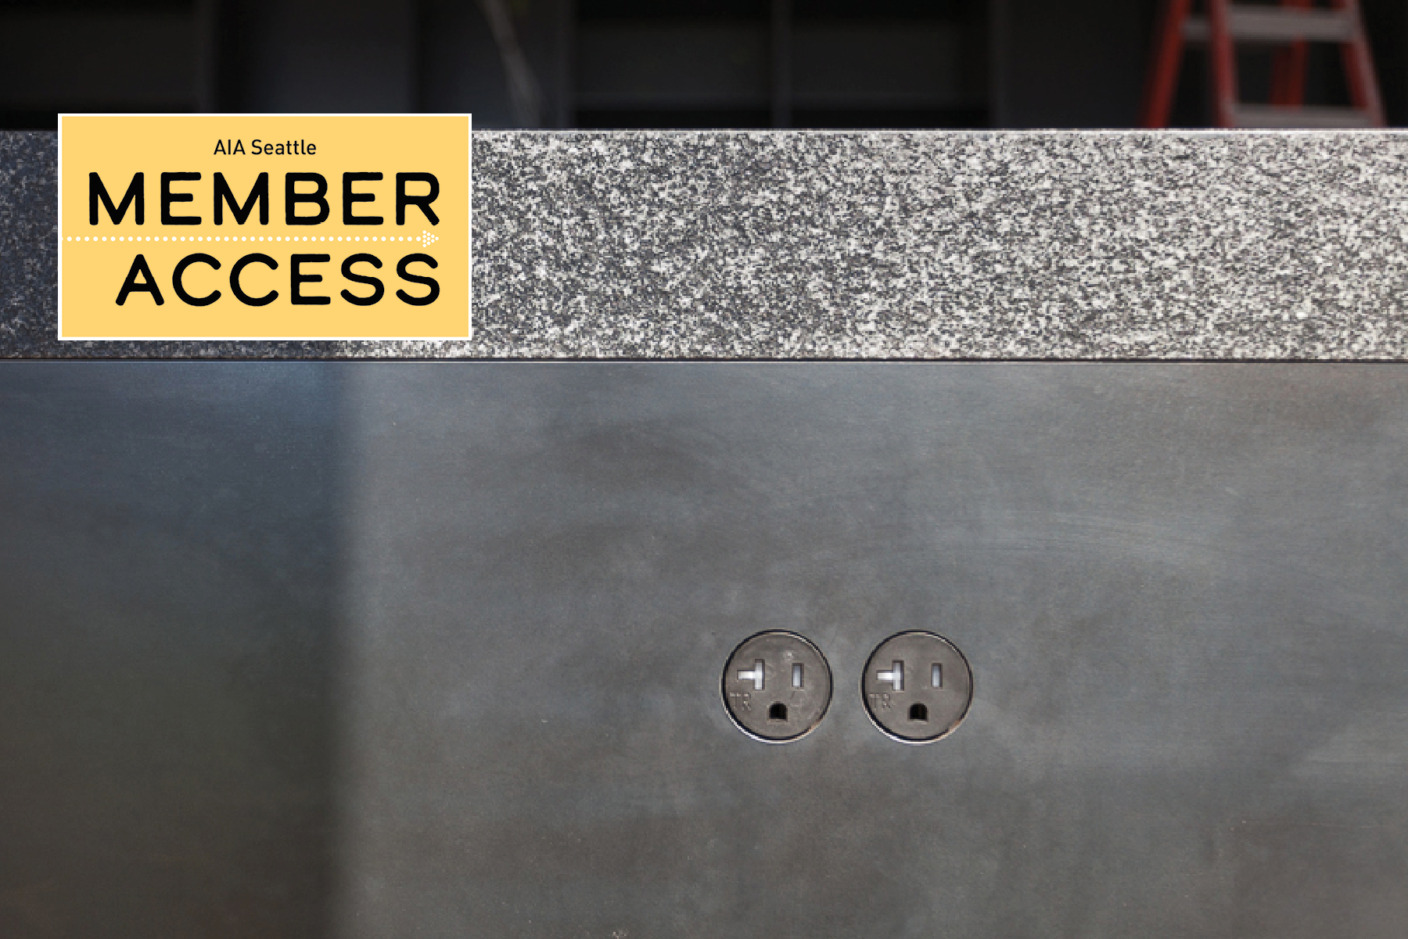 Join Dovetail's metal experts at this exclusive Member Access event to learn all about the technical aspects of steel as well as the blackening process.